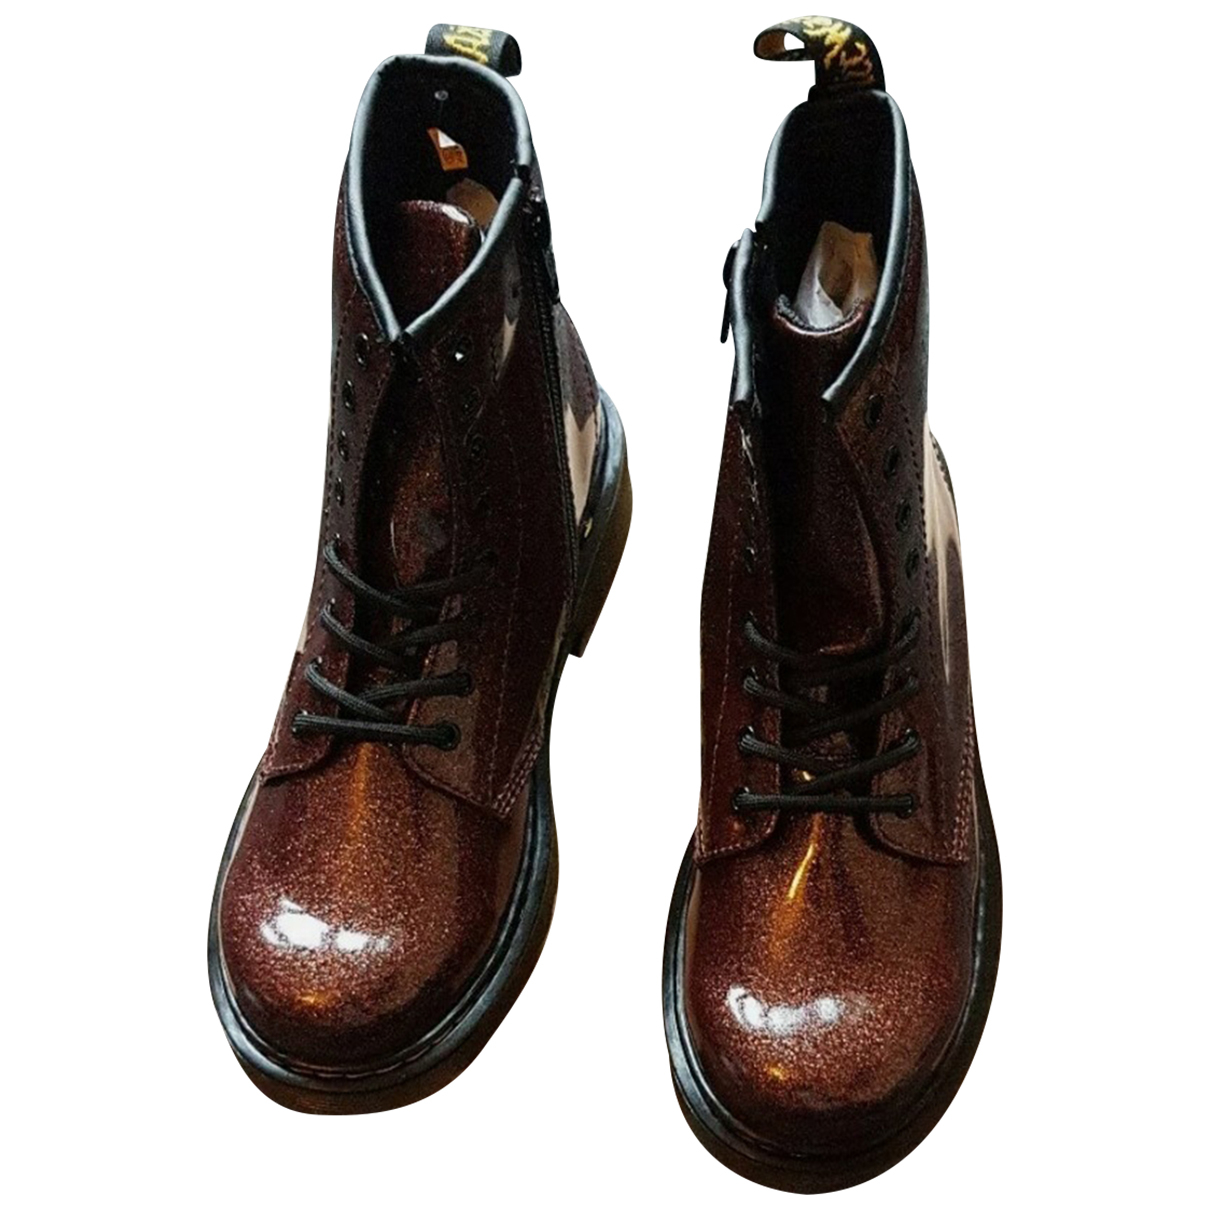 Dr. Martens 1460 Pascal (8 eye) Brown Leather Boots for Women 3 UK